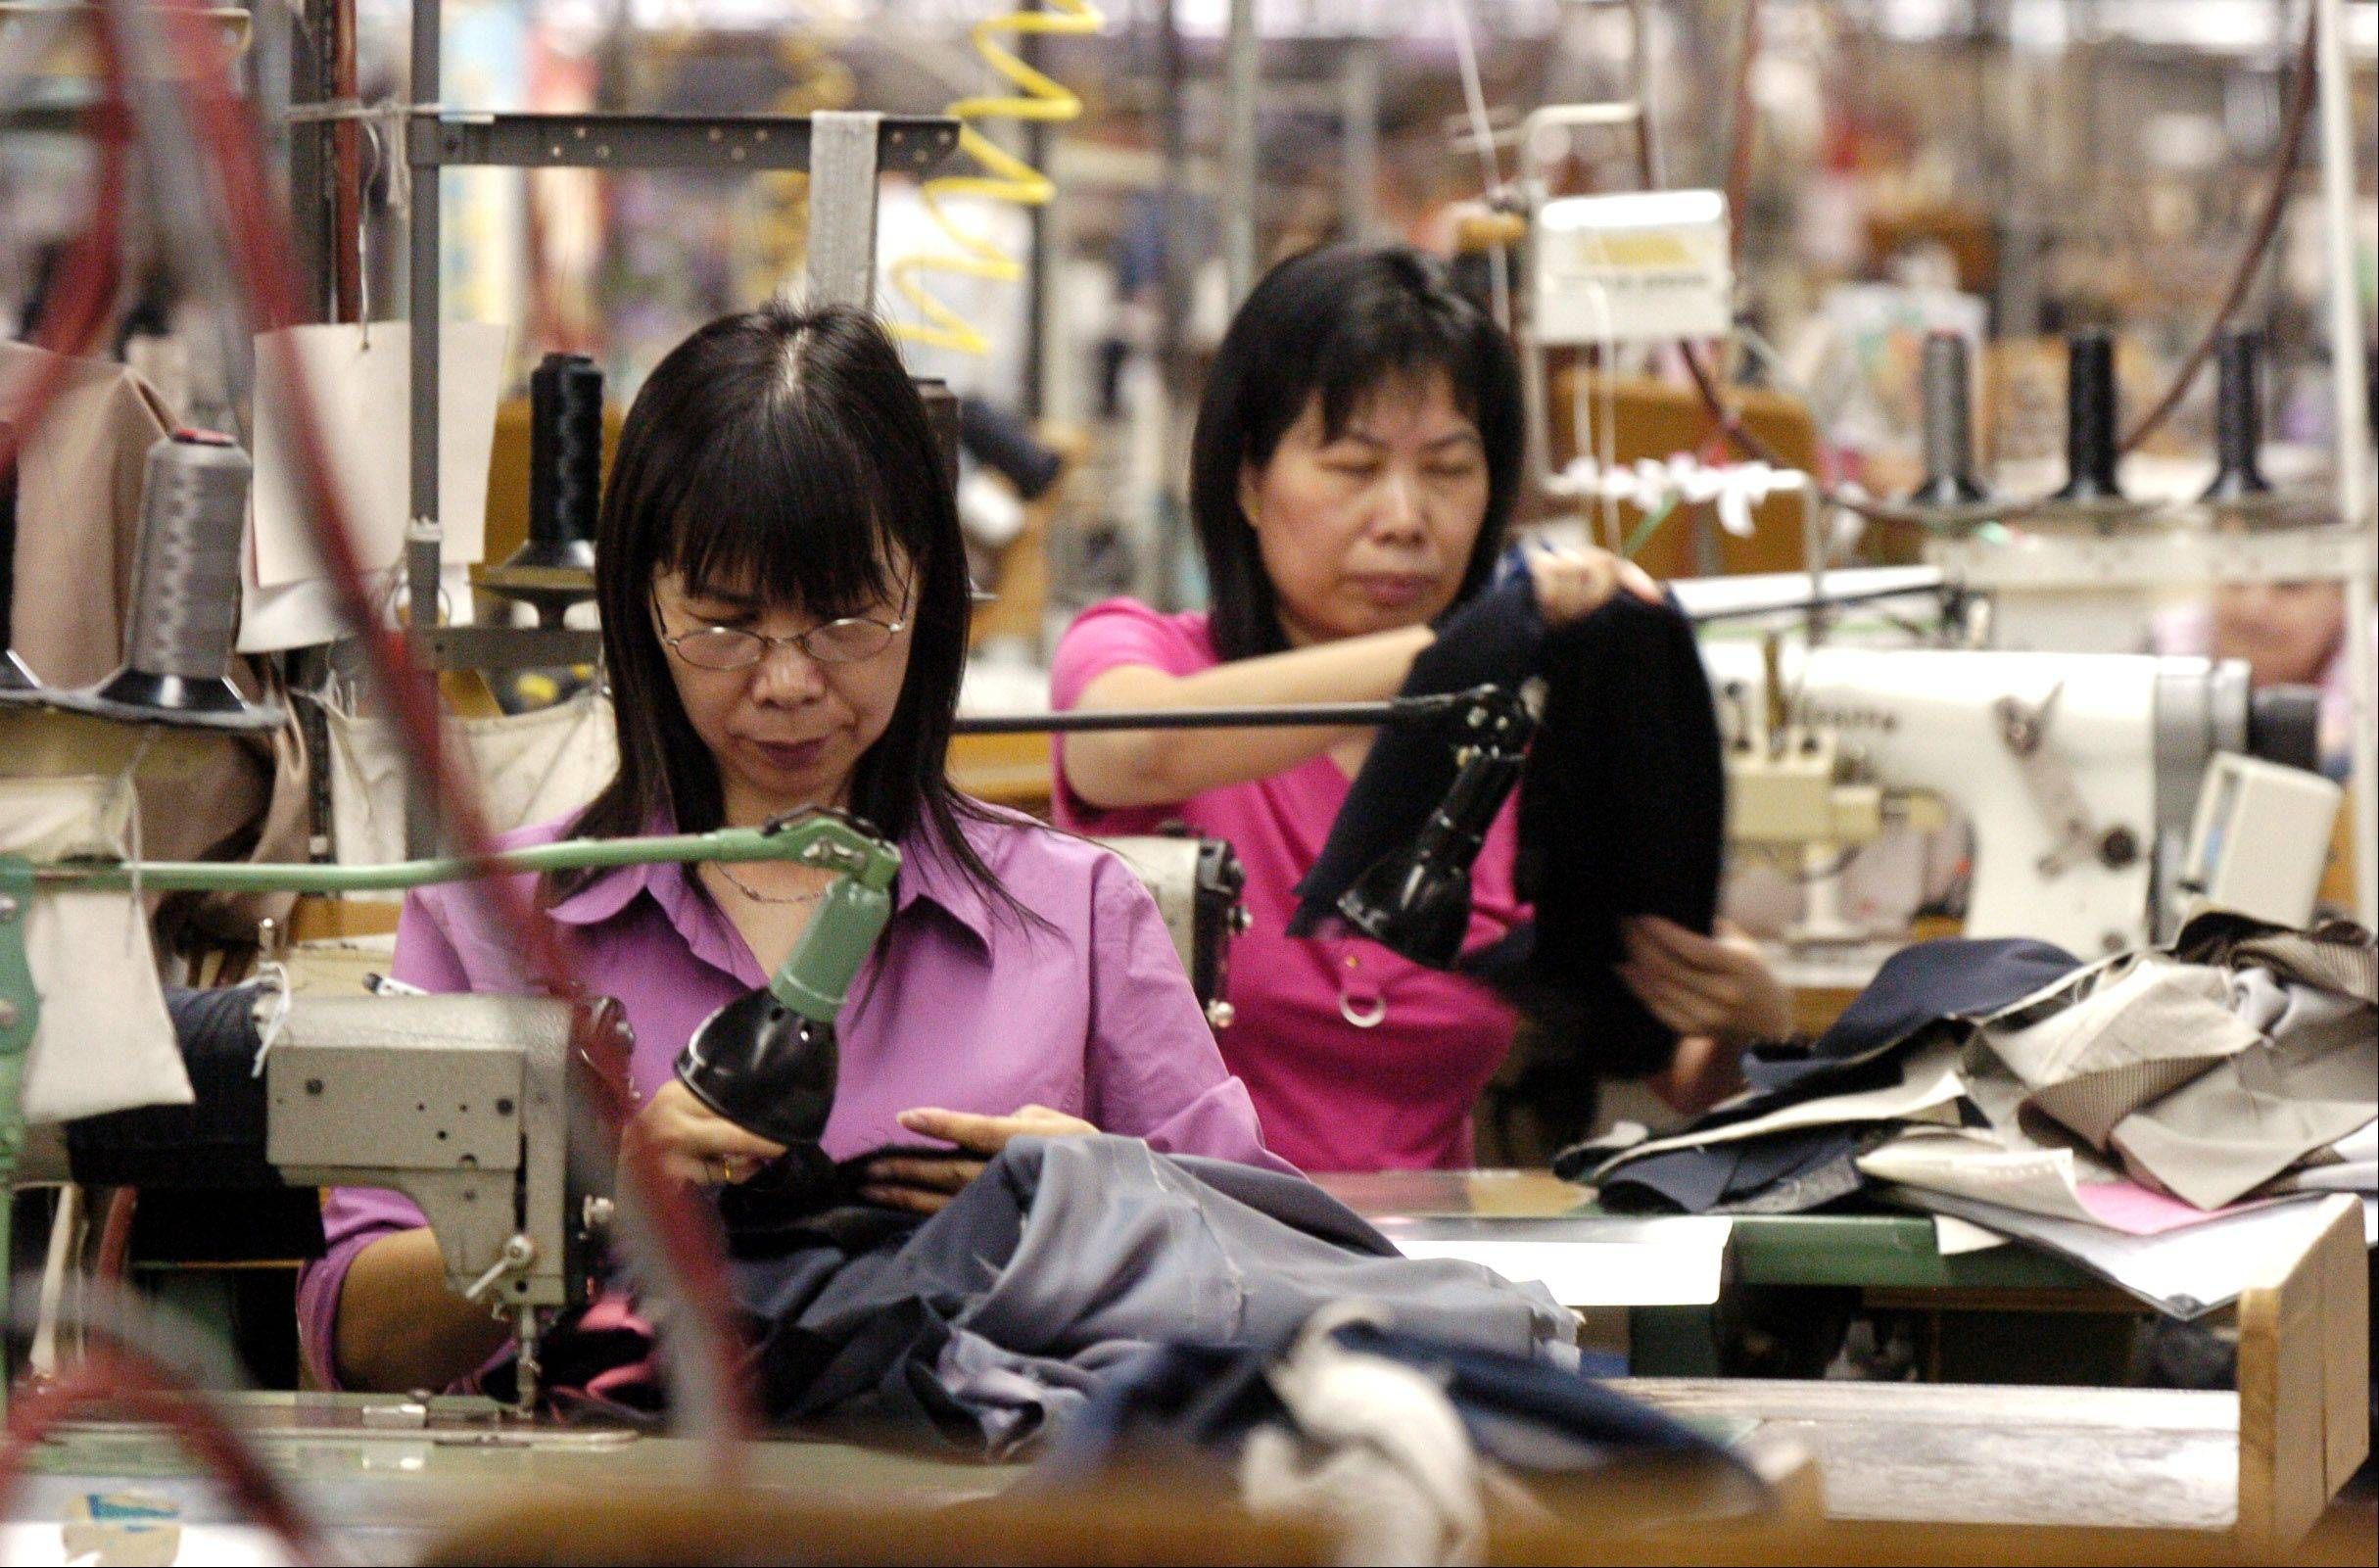 Li Yu Lan Chen has worked at suitmaker Hart Schaffner & Marx in Des Plaines for 10 years. The company, which emerged from bankruptcy in 2009, is seeking a $1.5 million federal grant to expand its operations and workforce in Des Plaines.